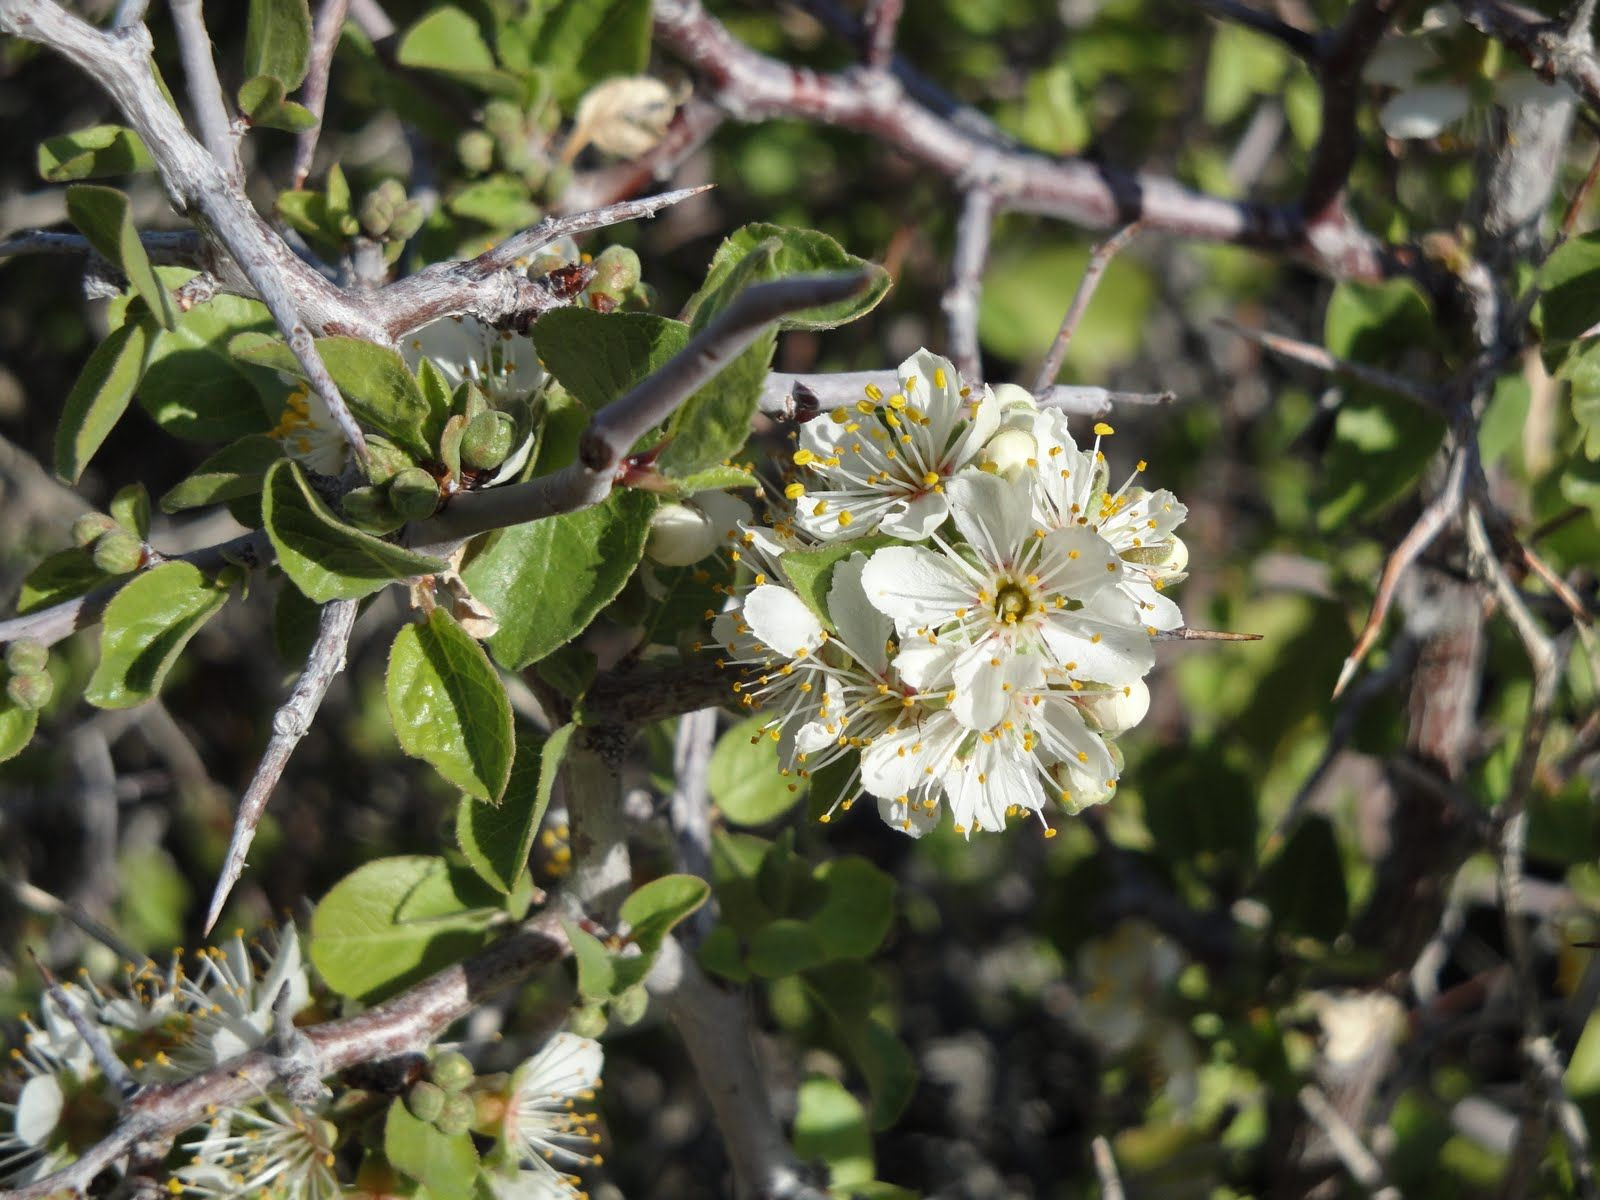 Rare blooms of the Desert Apricot bush.